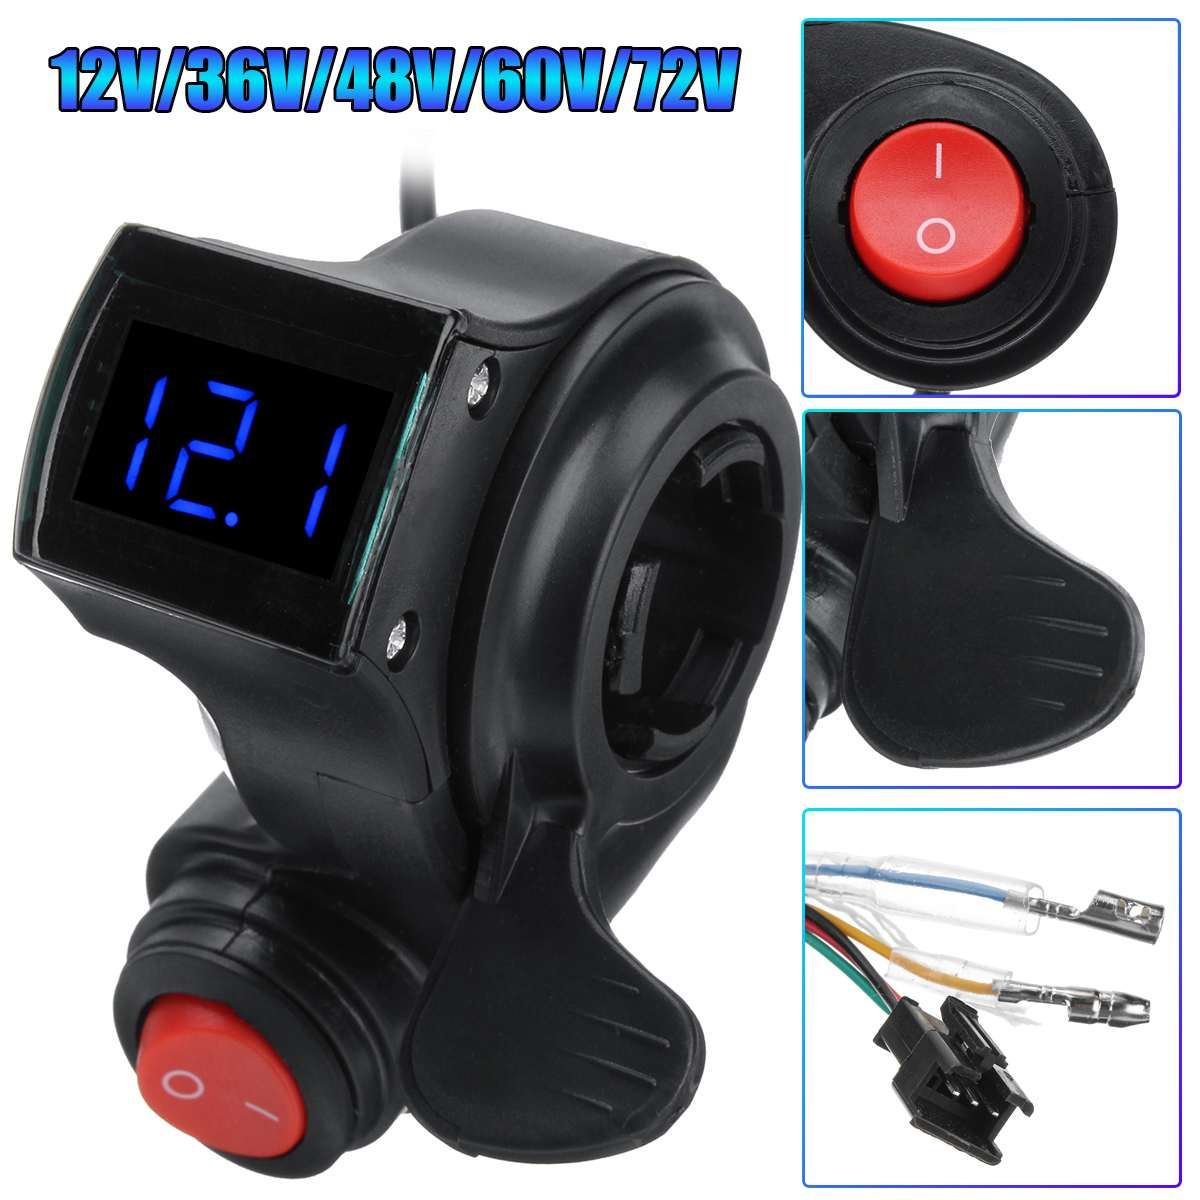 Electric Bicycle Thumb Throttle 12V-72V Thumb Throttle With Power Switch LED Voltage Display For Electric Bike Accessories